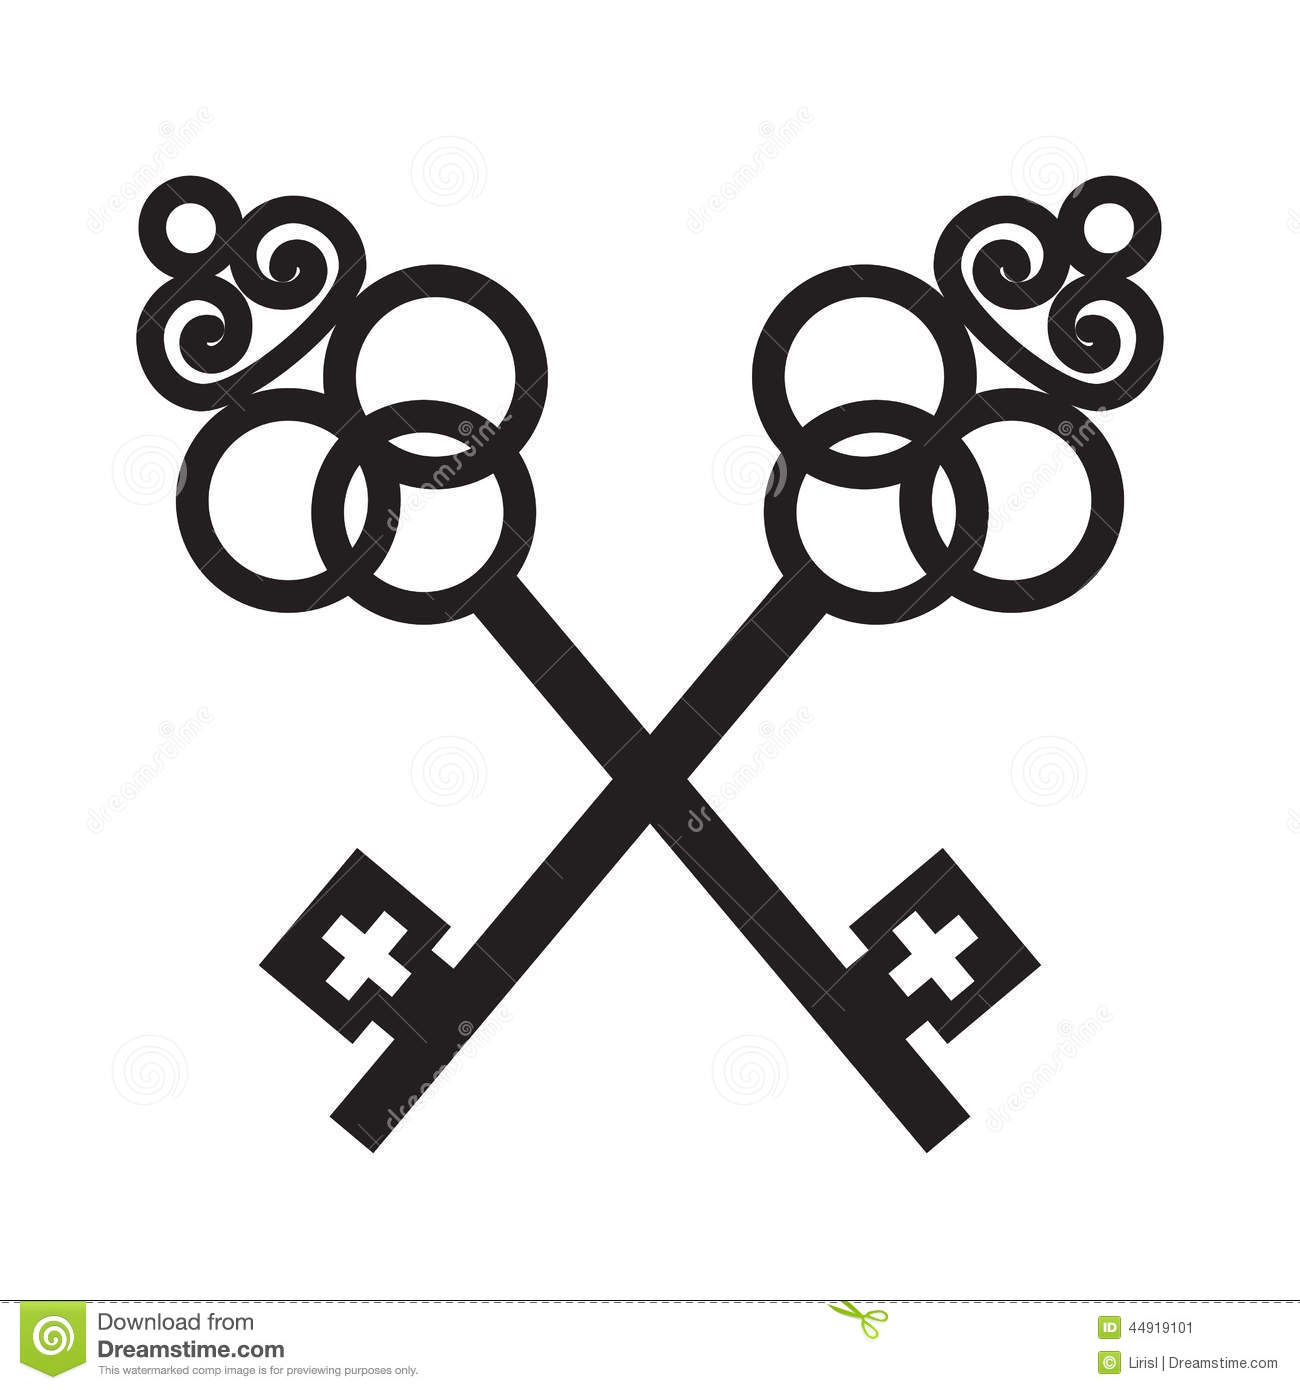 Two Crossed Ancient Keys Stock Vector Illustration Of